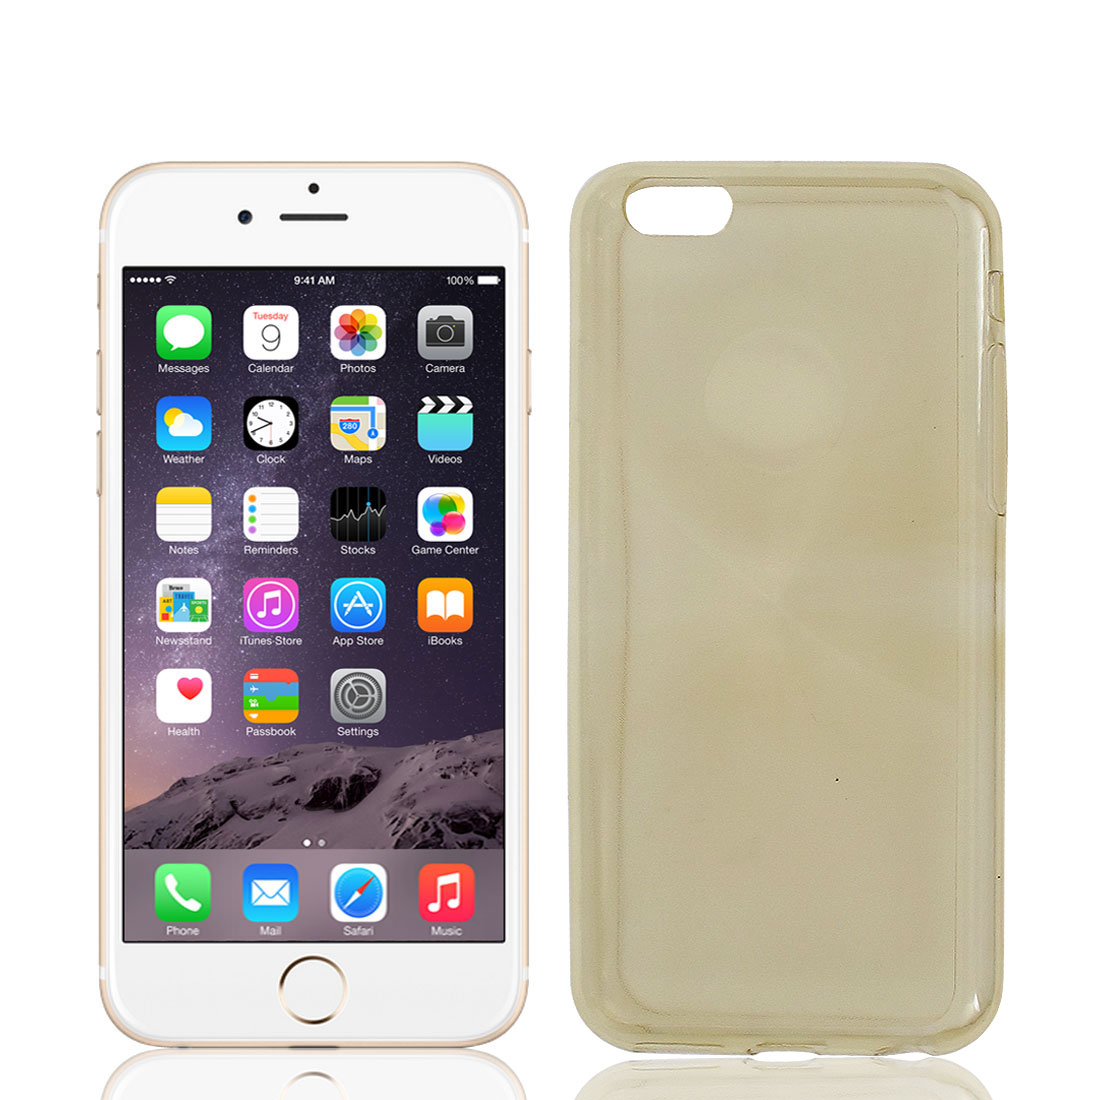 TPU Case Cover Bumper Light Yellow w Protective Film for Apple iPhone 6 4.7""